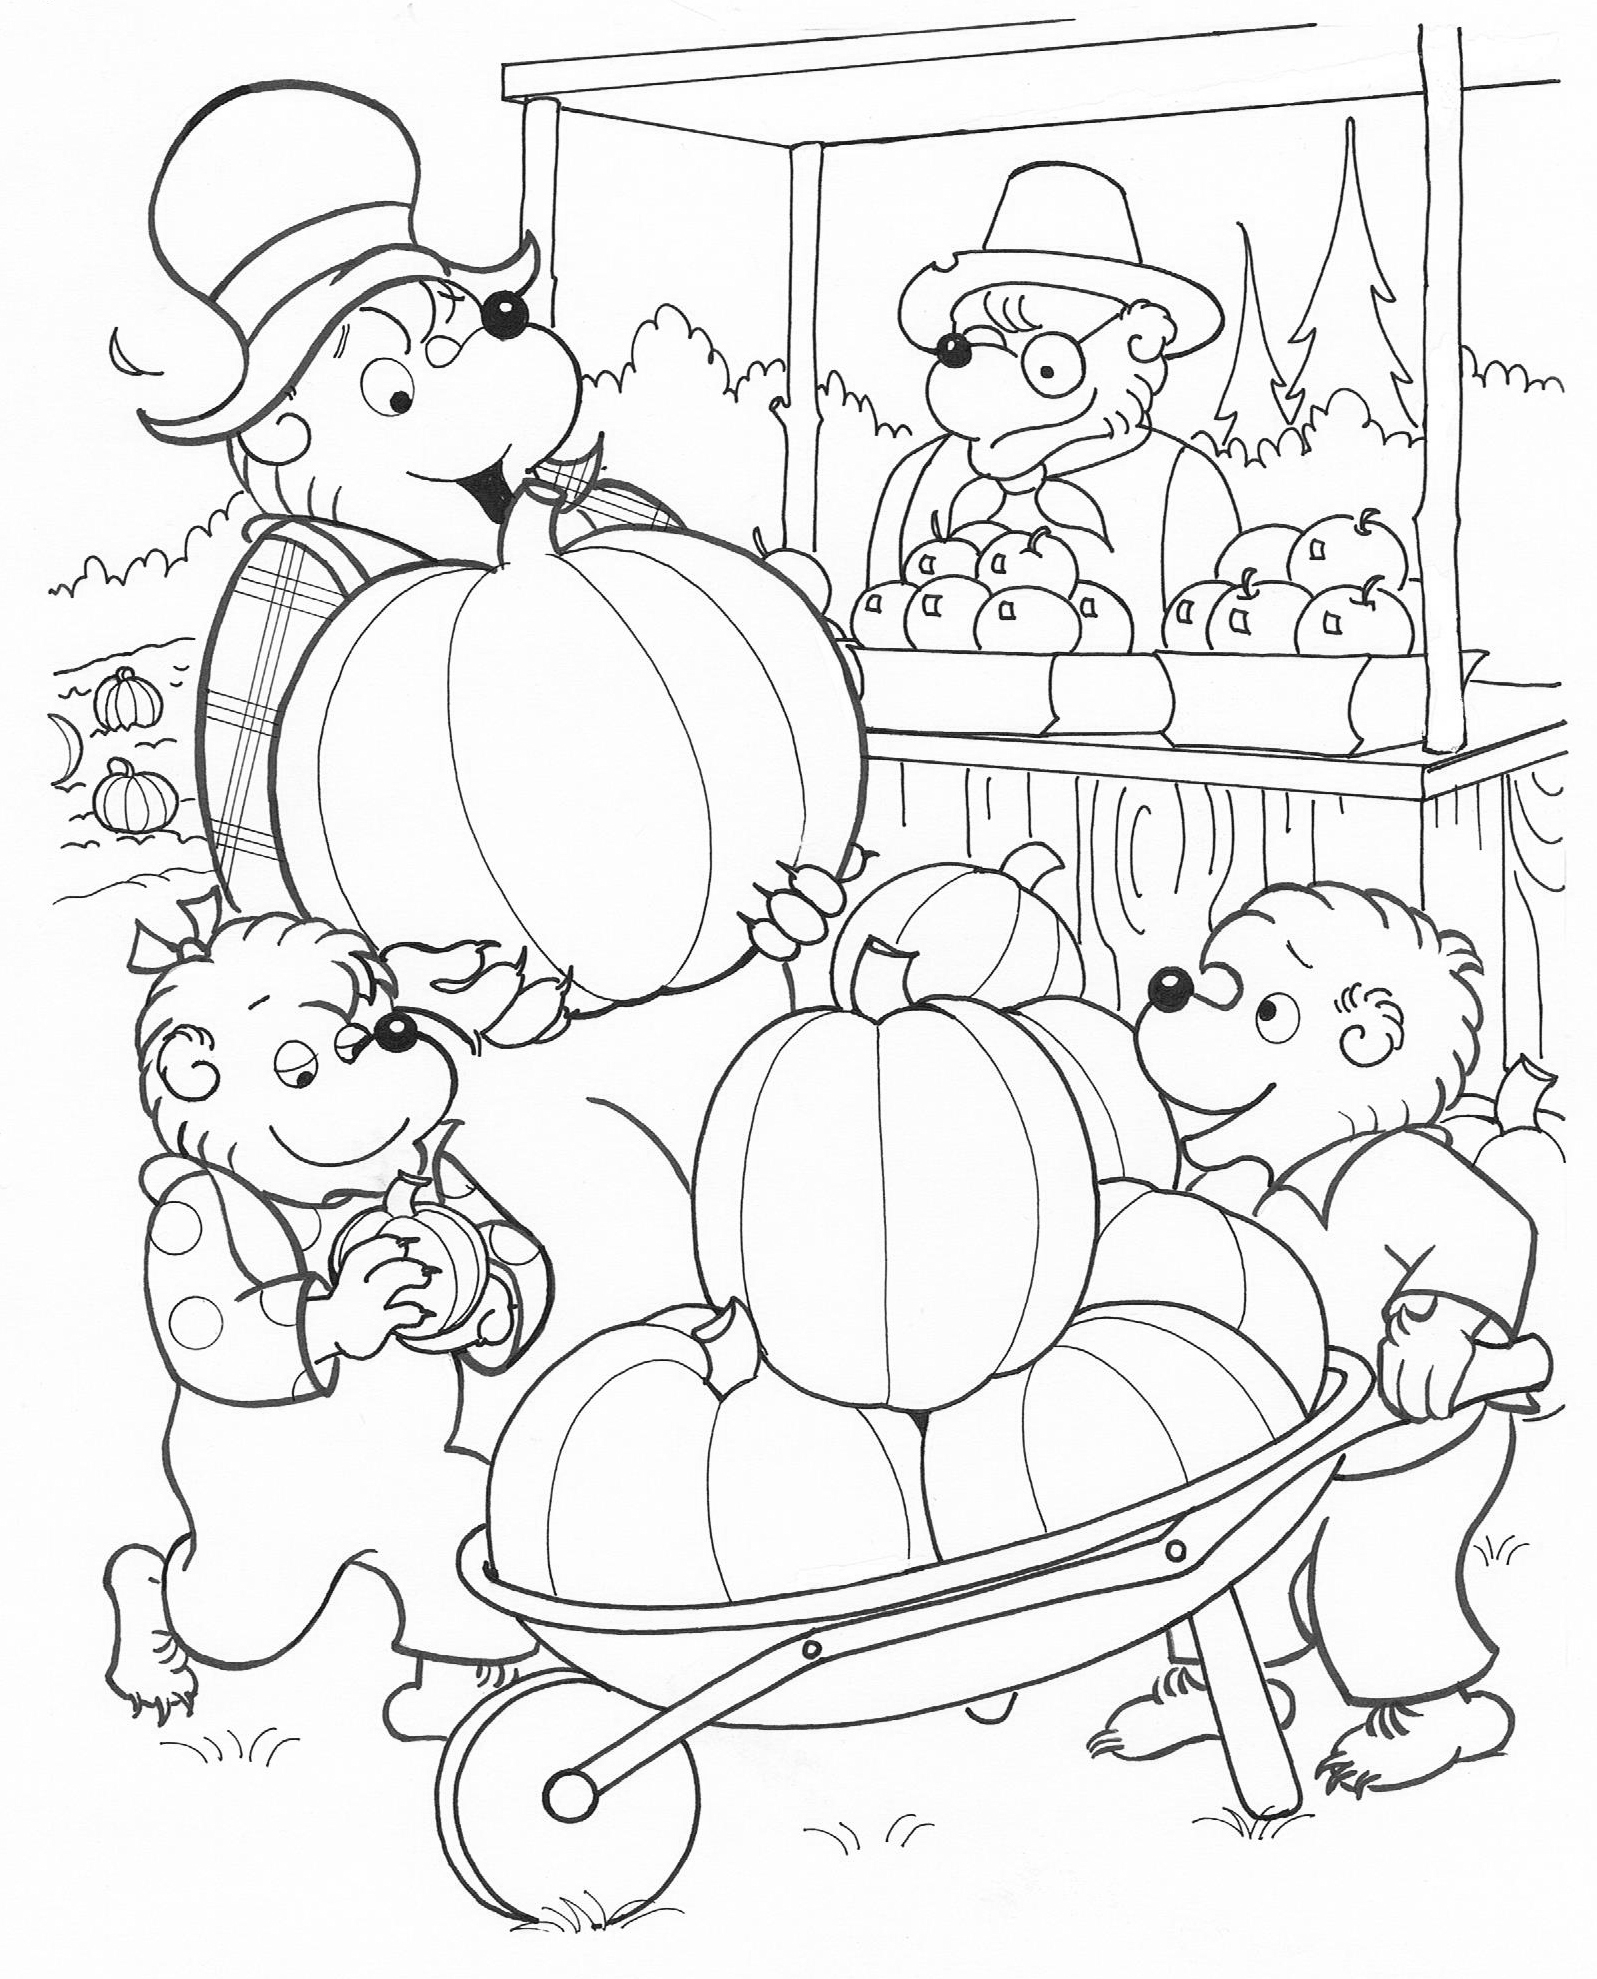 berenstain bears coloring pages - berenstain bear coloring page